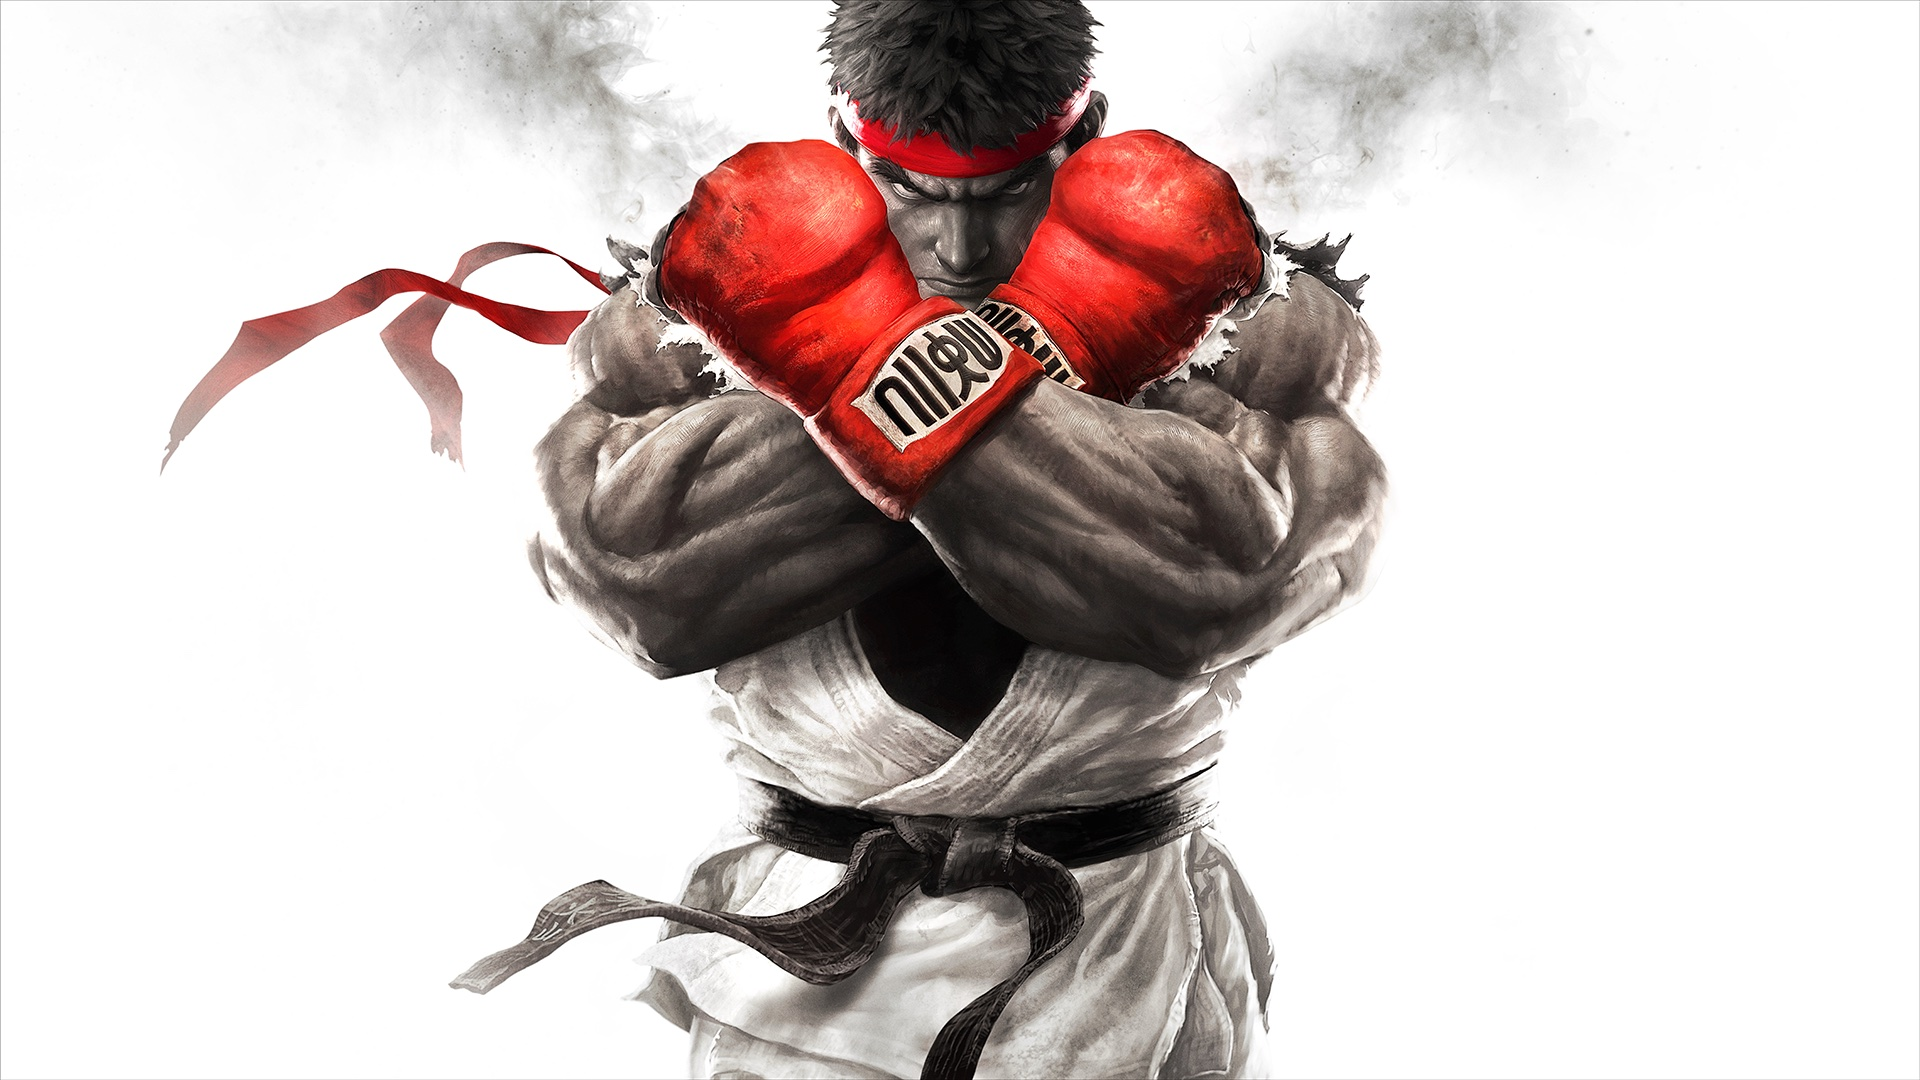 Key art of Ryu from Street Fighter 5